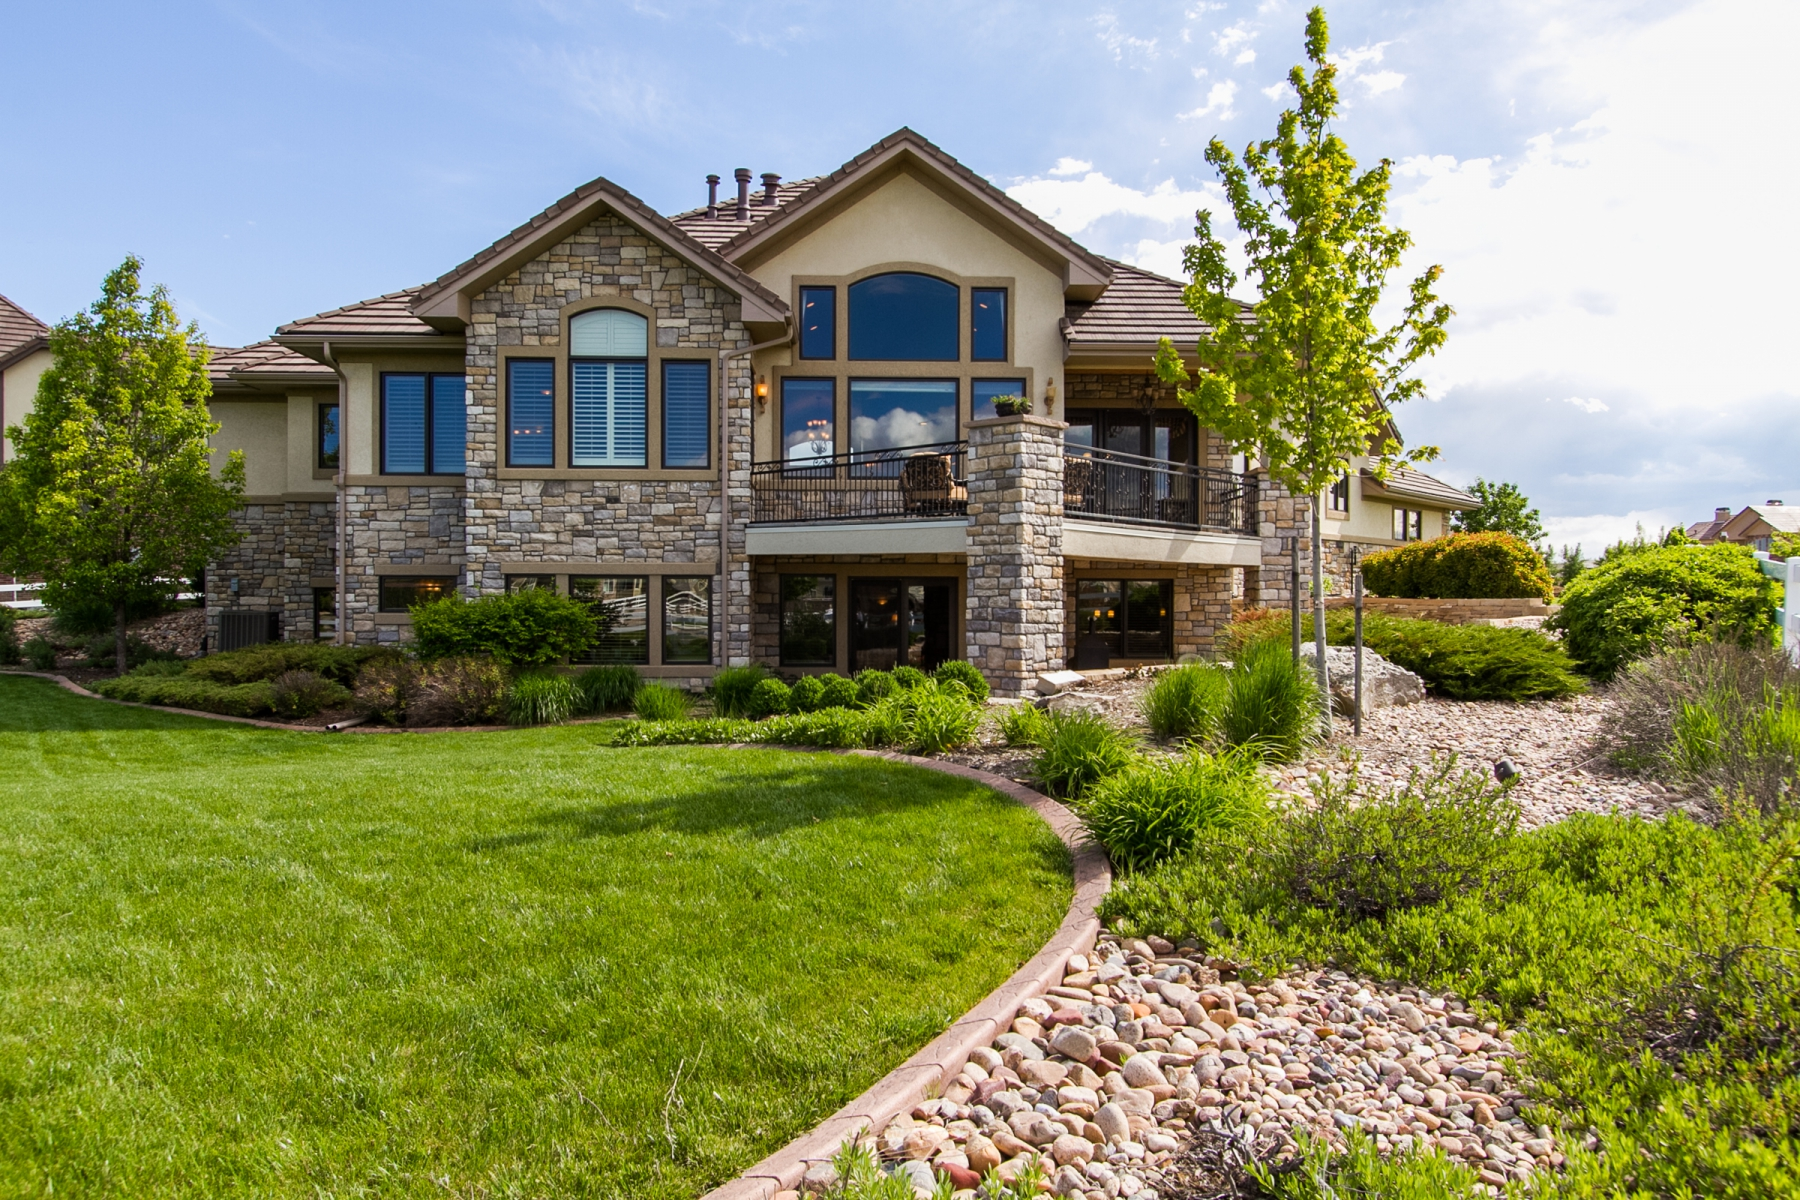 Single Family Home for Sale at 1275 Huntington Trails Parkway Westminster, Colorado 80023 United States